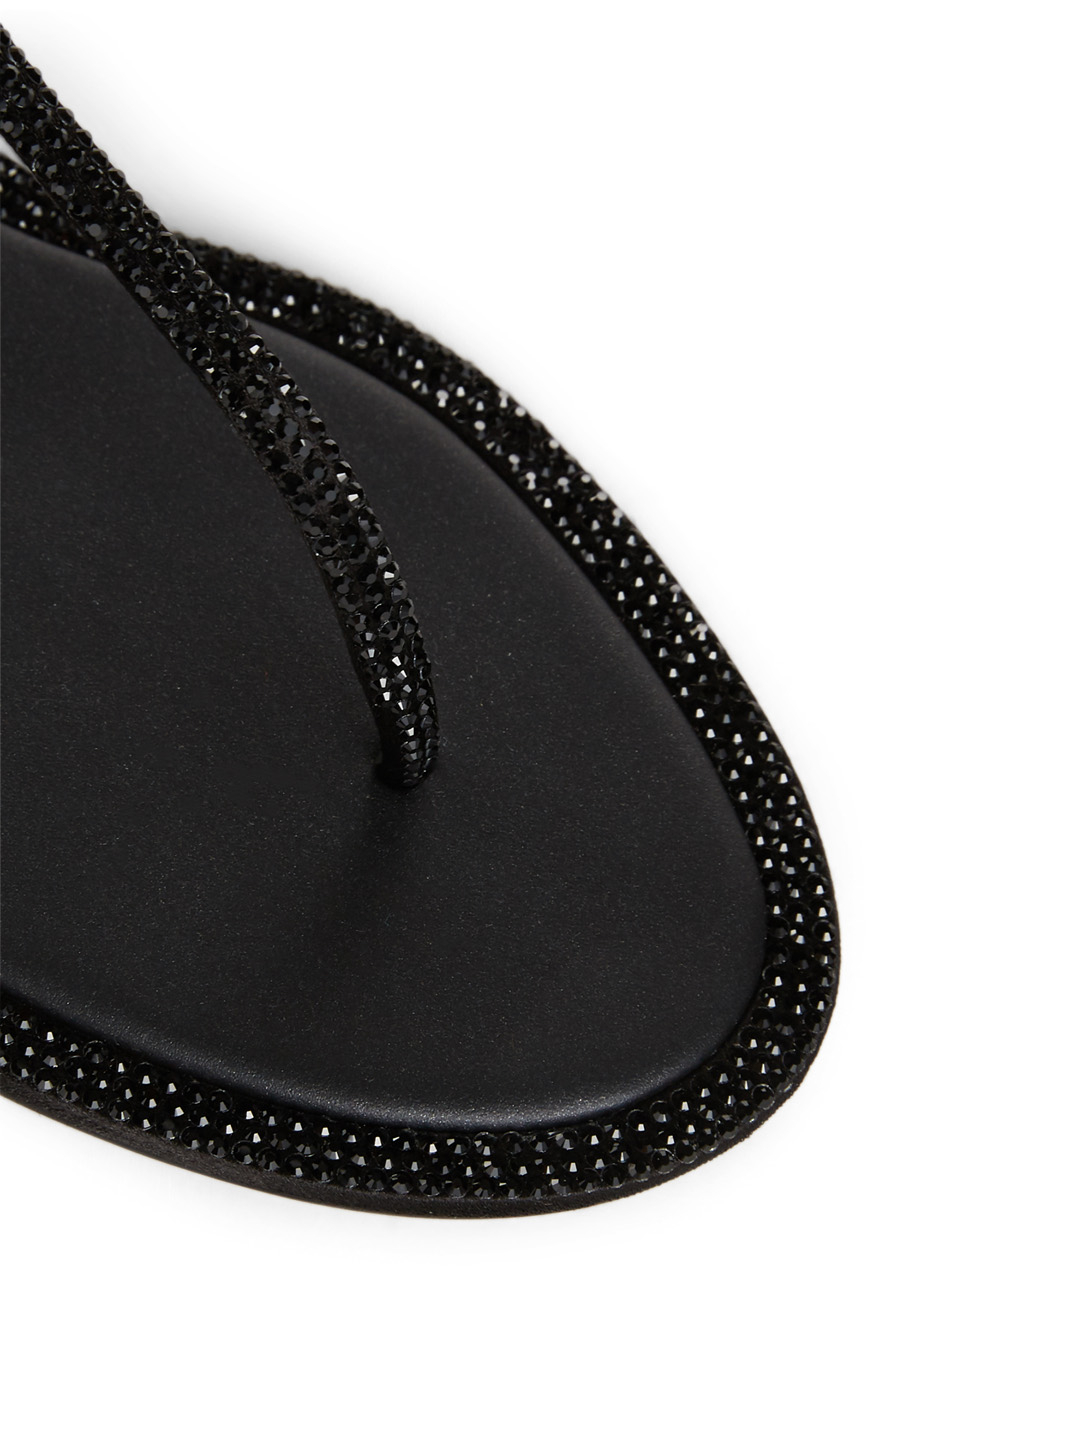 RENE CAOVILLA Diana Satin Strass Thong Sandals Womens Black